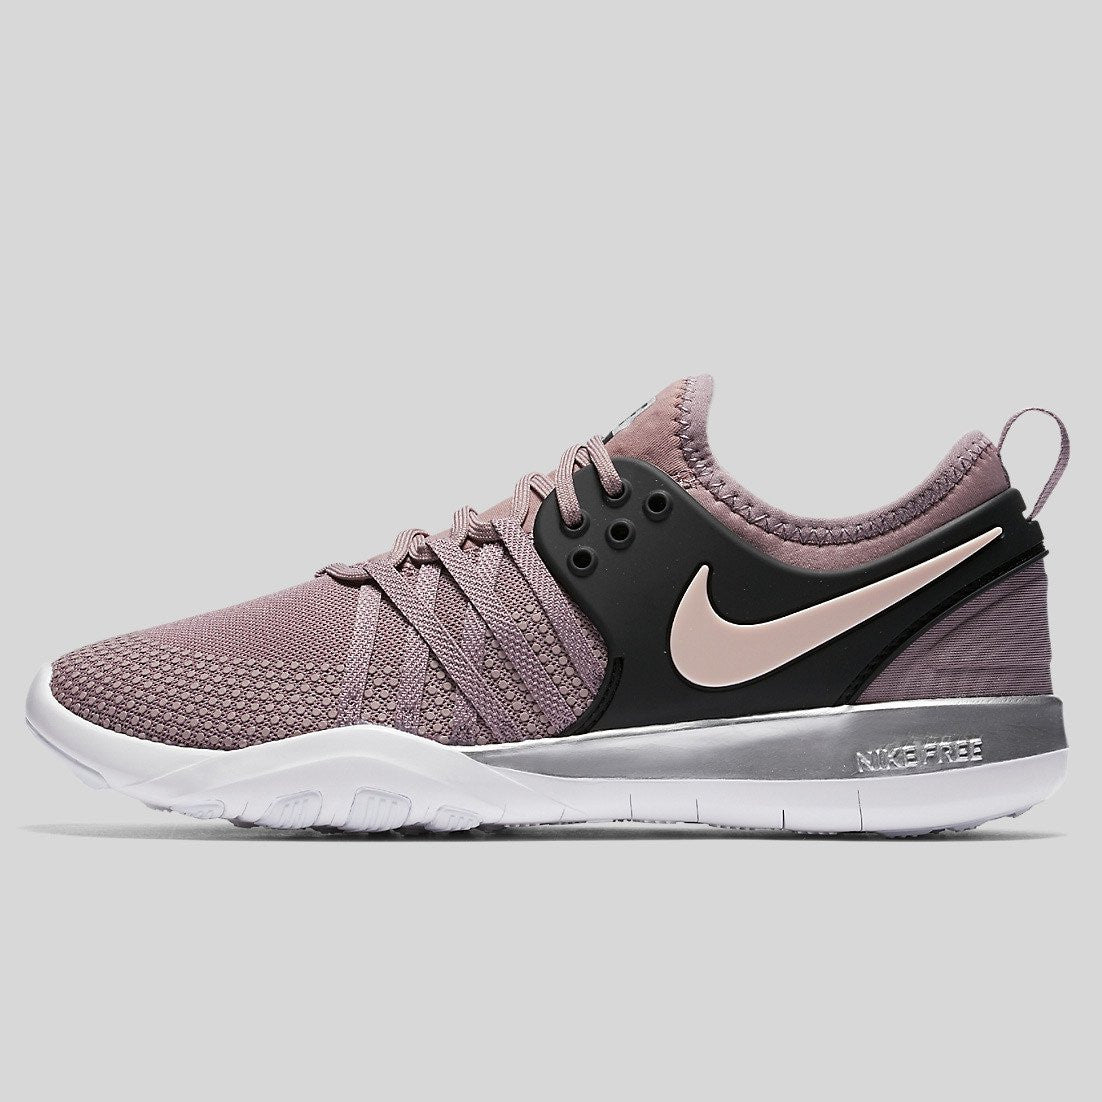 finest selection afb08 95c80 Nike Wmns Free TR 7 Bionic Taupe Grey Black Sunset Tint (921061-200)